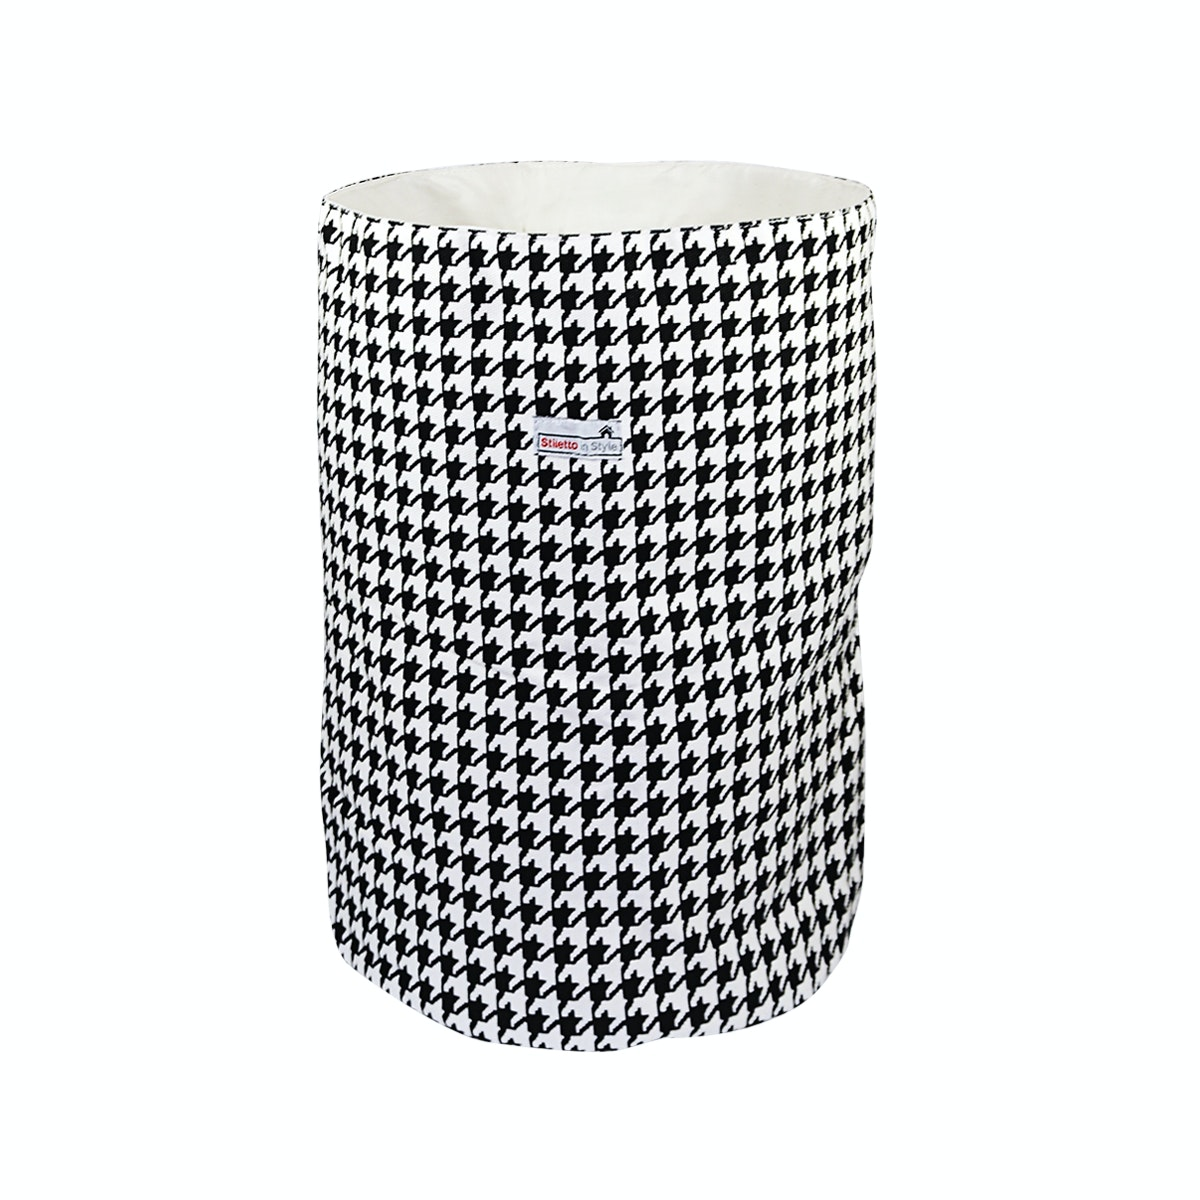 Stiletto In Style Large Storage - Houndstooth